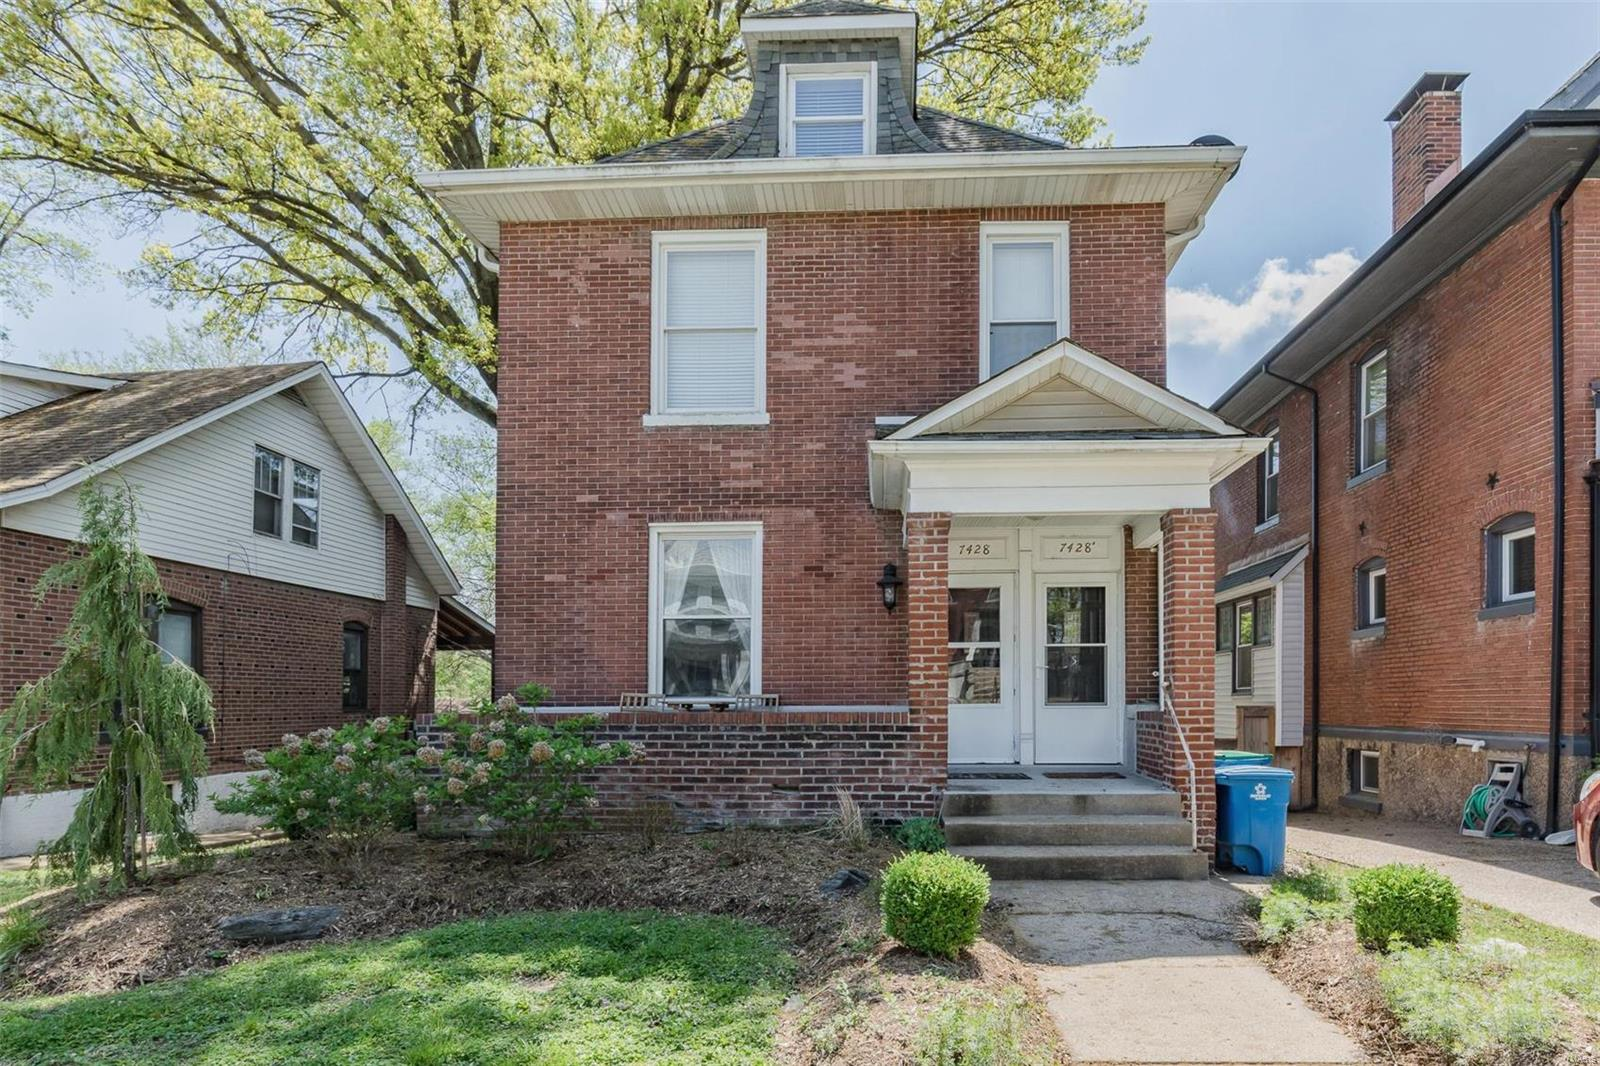 7428 Hazel Avenue Property Photo - St Louis, MO real estate listing